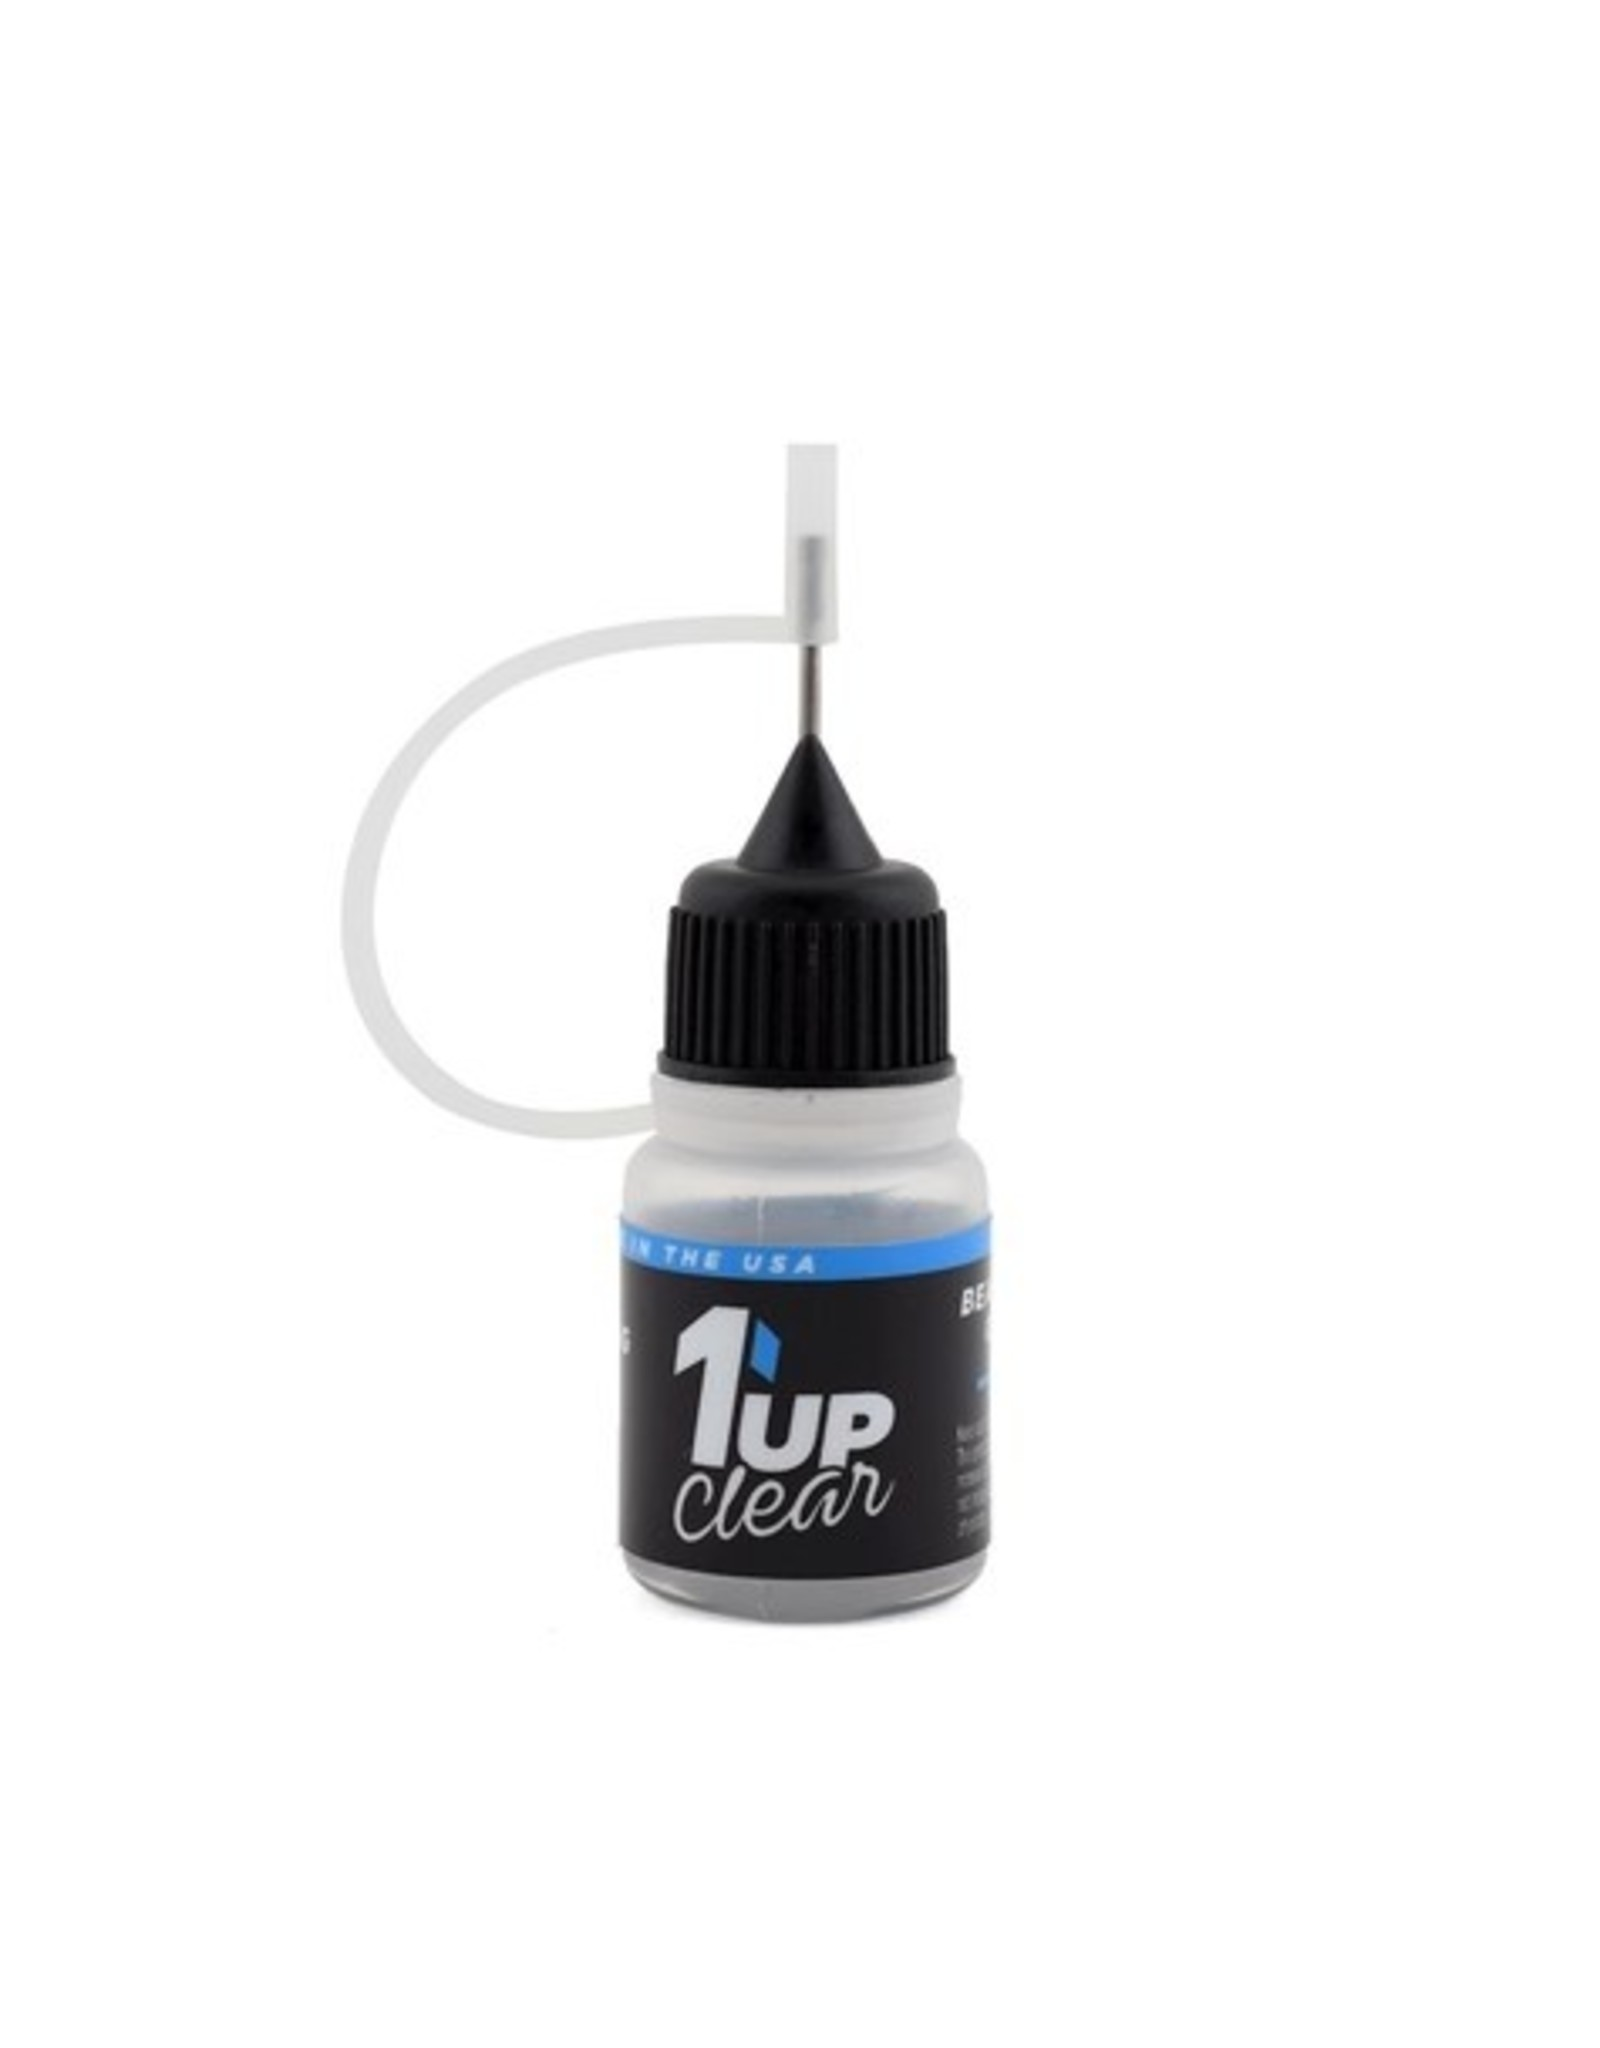 1UP Clear - Bearing Oil  (1UP120201)